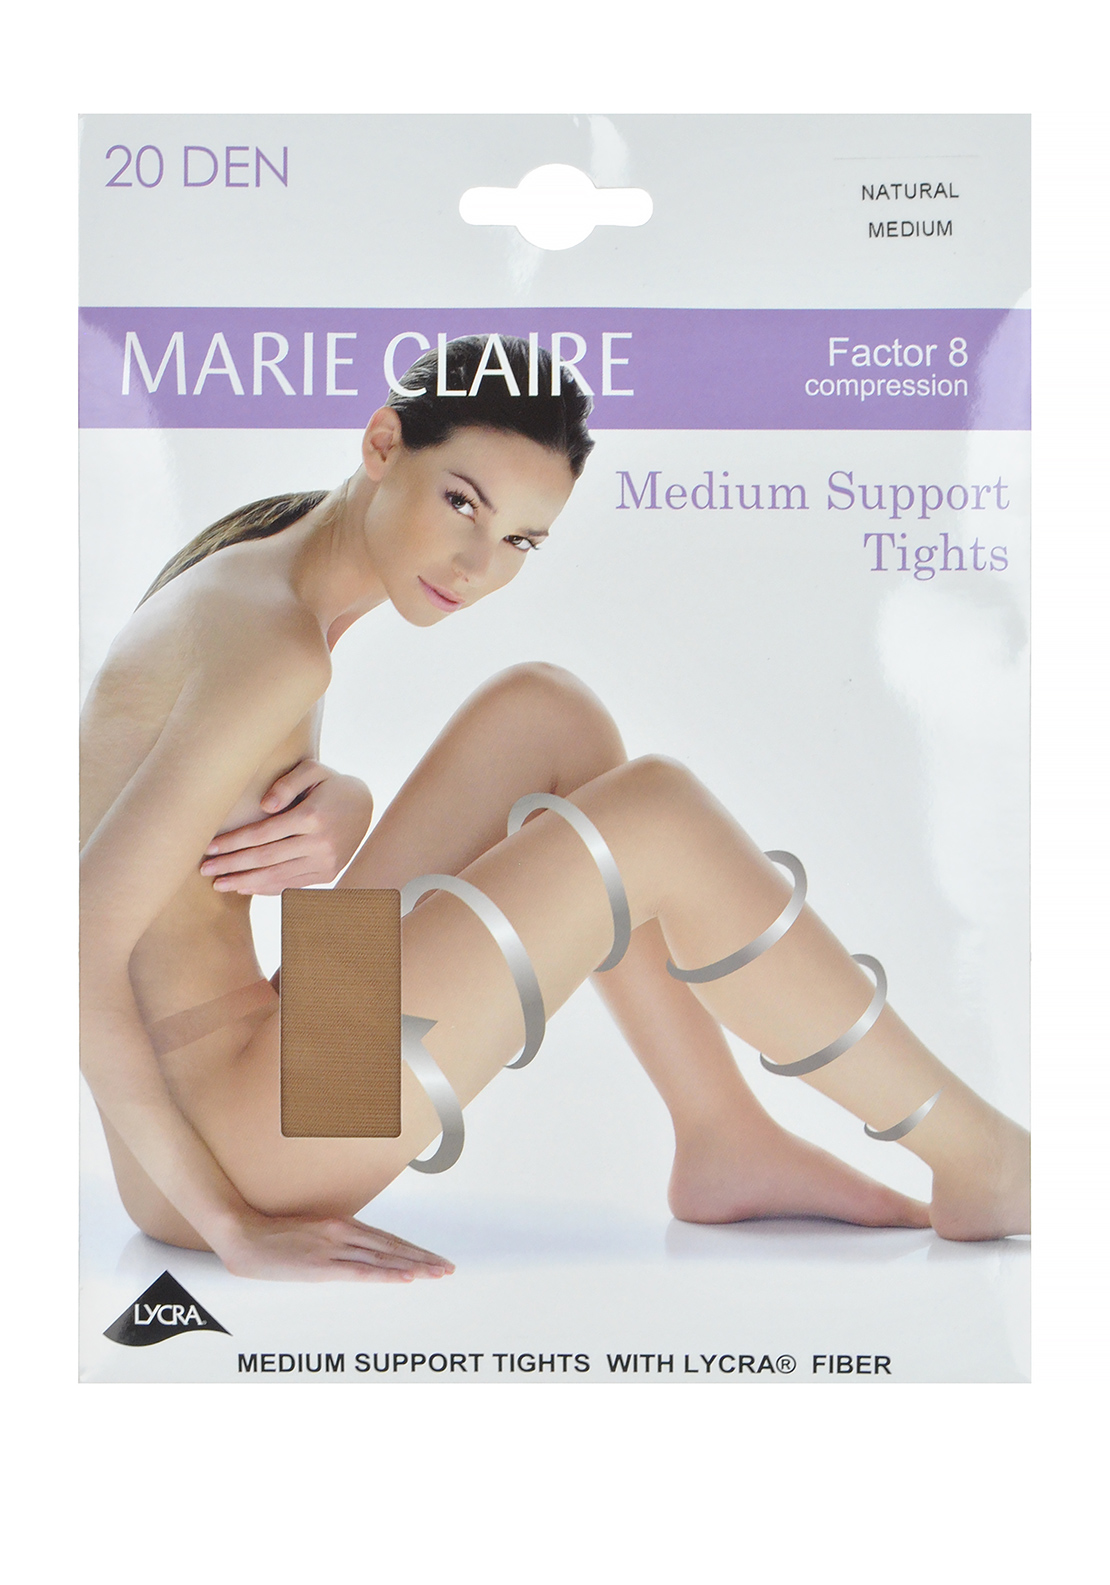 Marie Claire 20 Denier Medium Support Tights, Natural